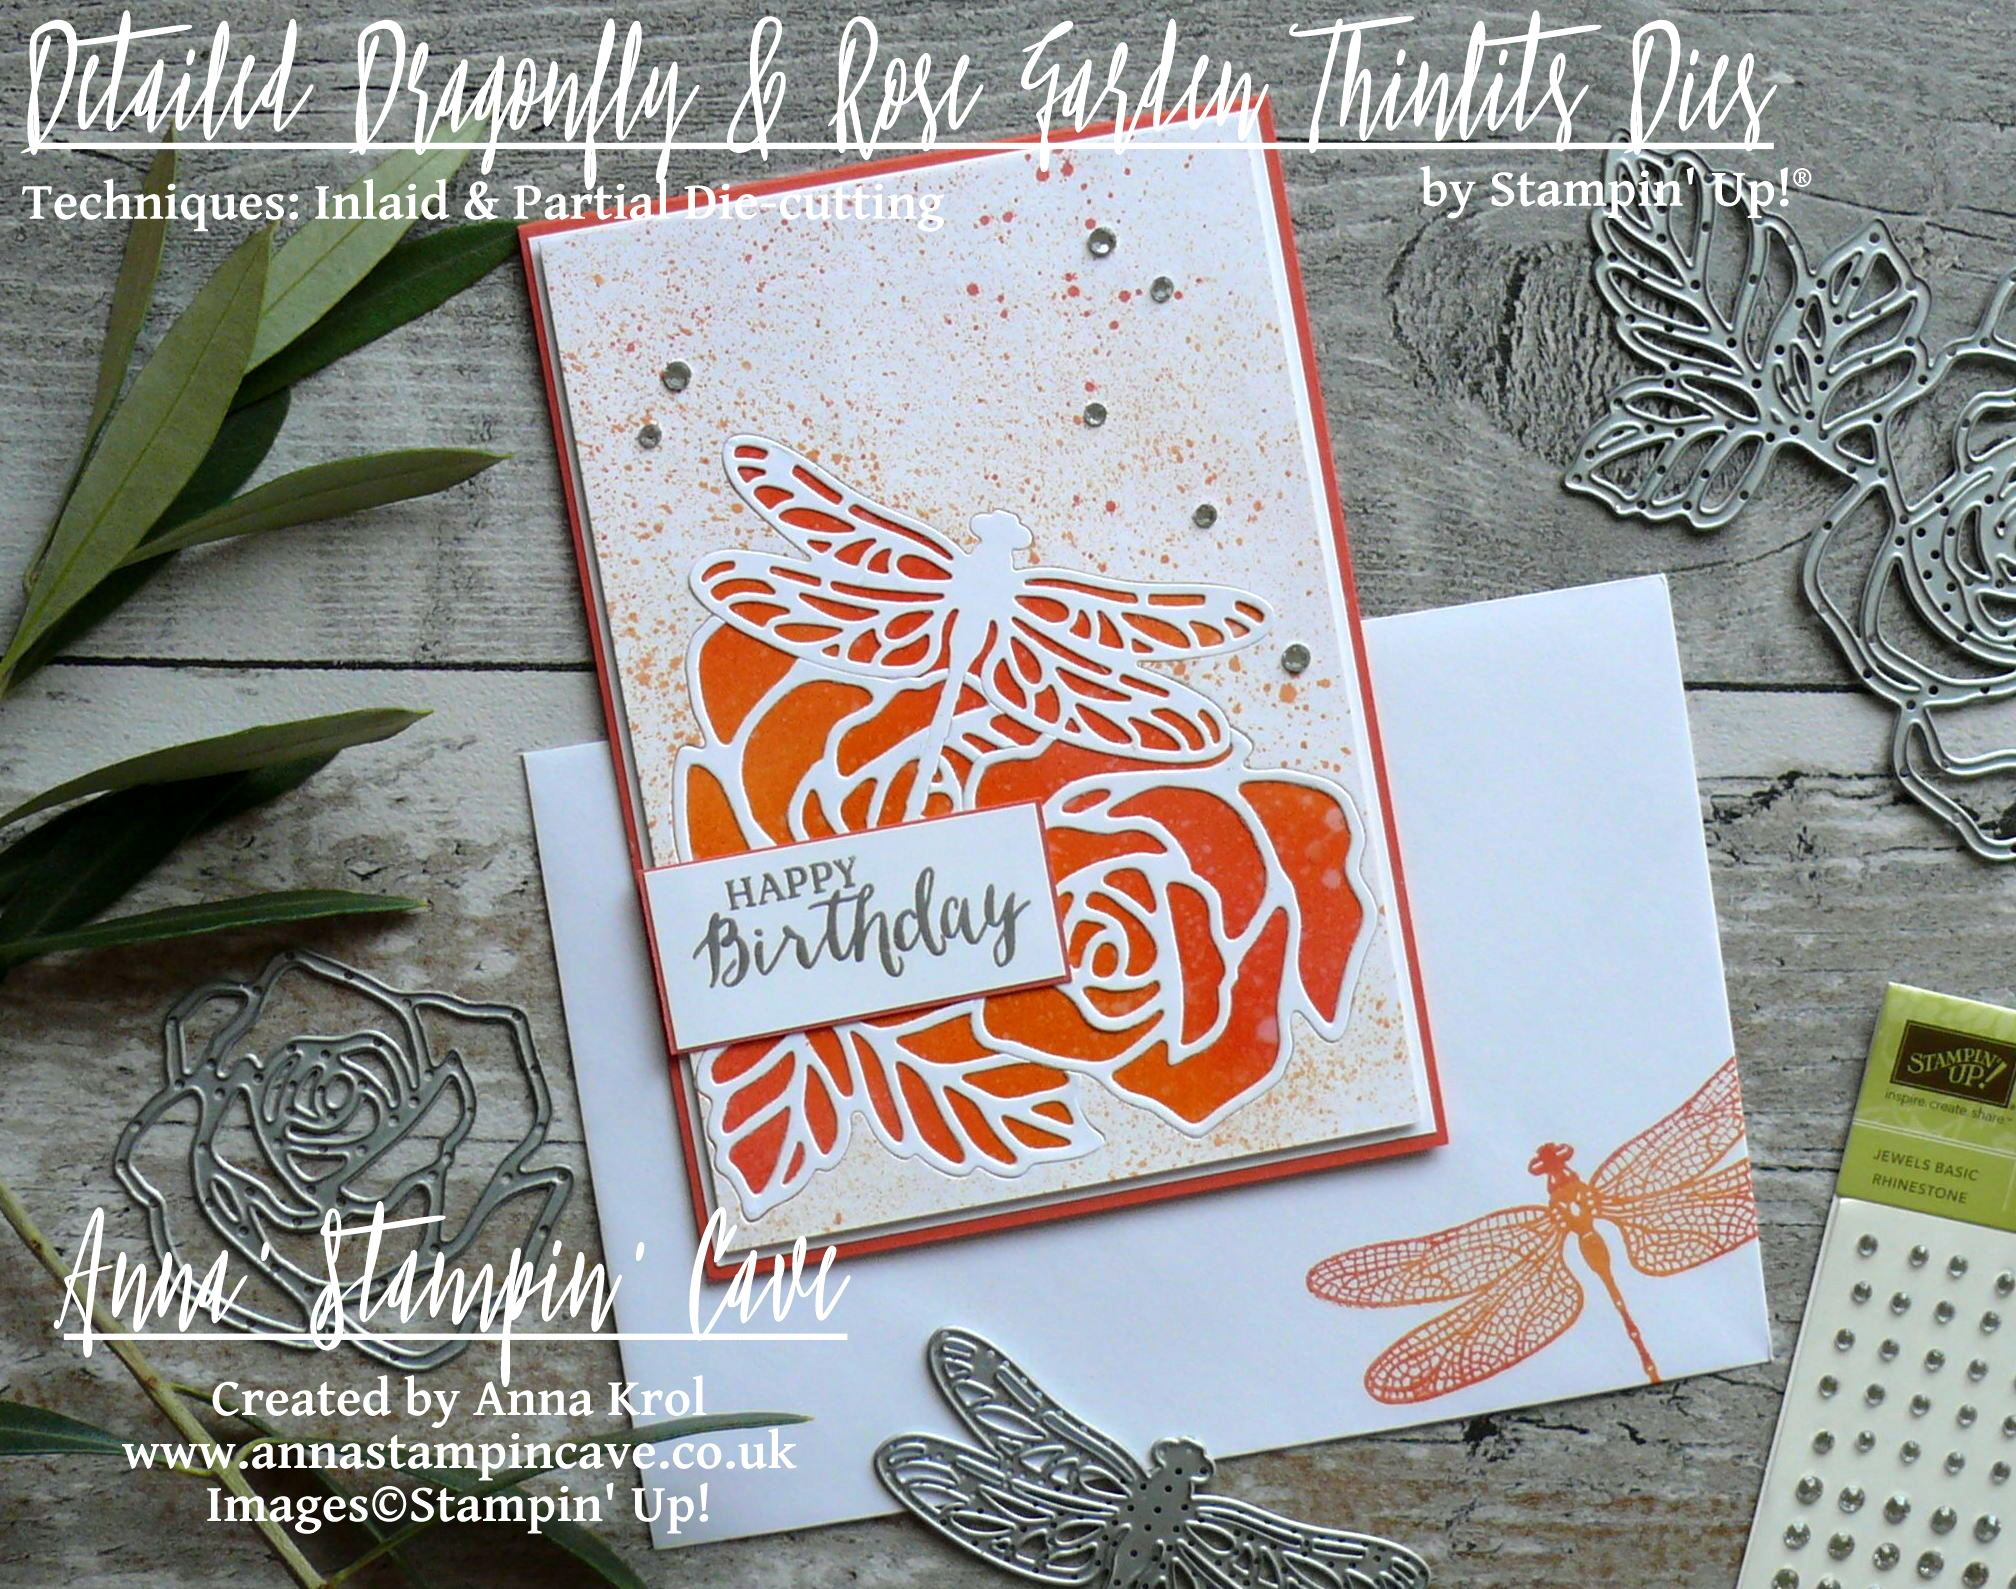 Anna' Stampin' Cave - Roses And Dragonfly Birthday Card using Inlaid Partial Die Cutting_Stampin' Up! Rose Garden Thinlits Dies_Detailed Dragonfly Thinlits Dies